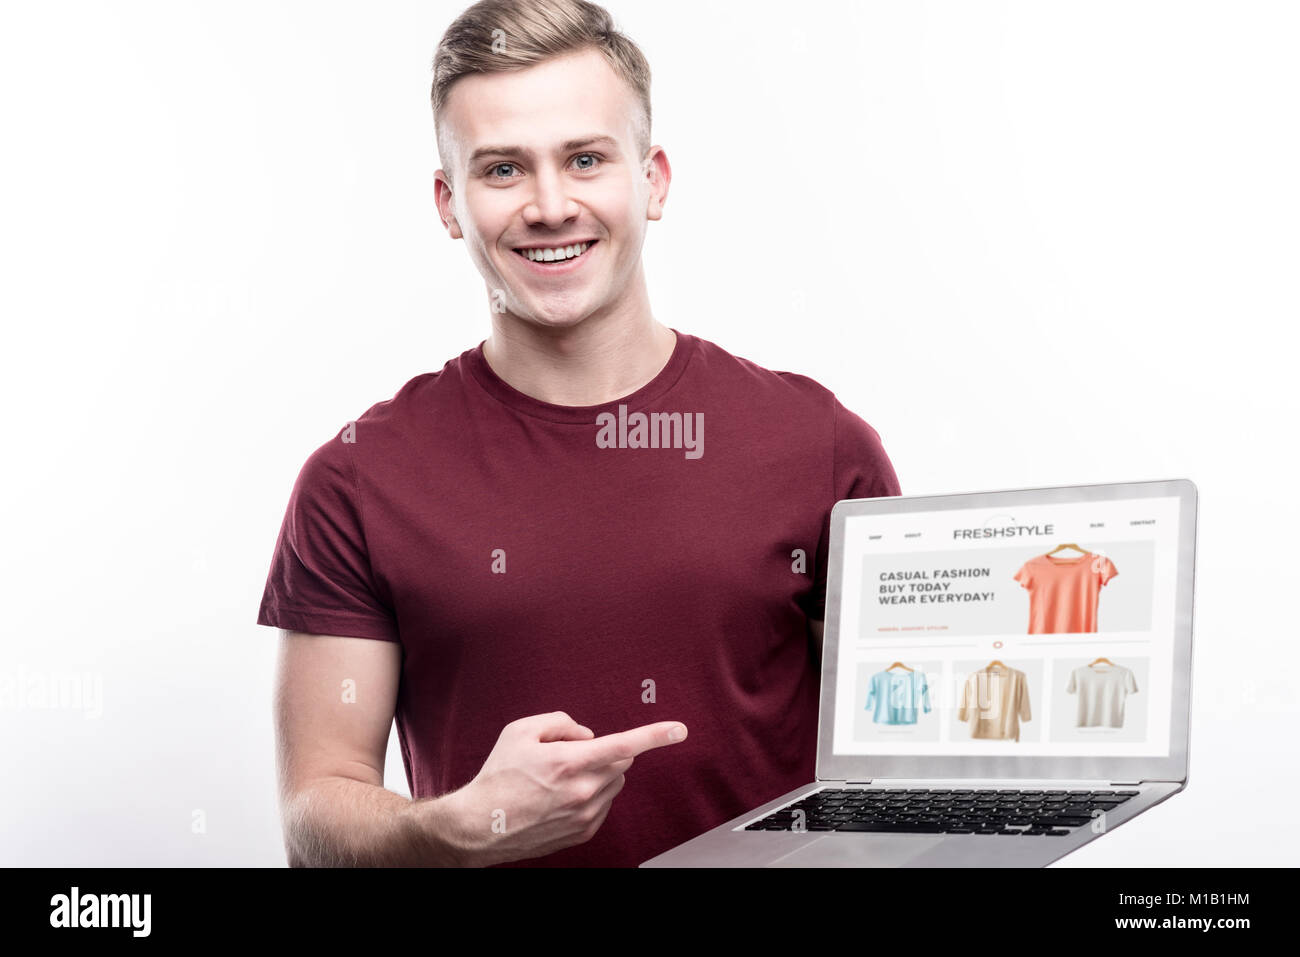 Charming man showing website of online clothes shop - Stock Image